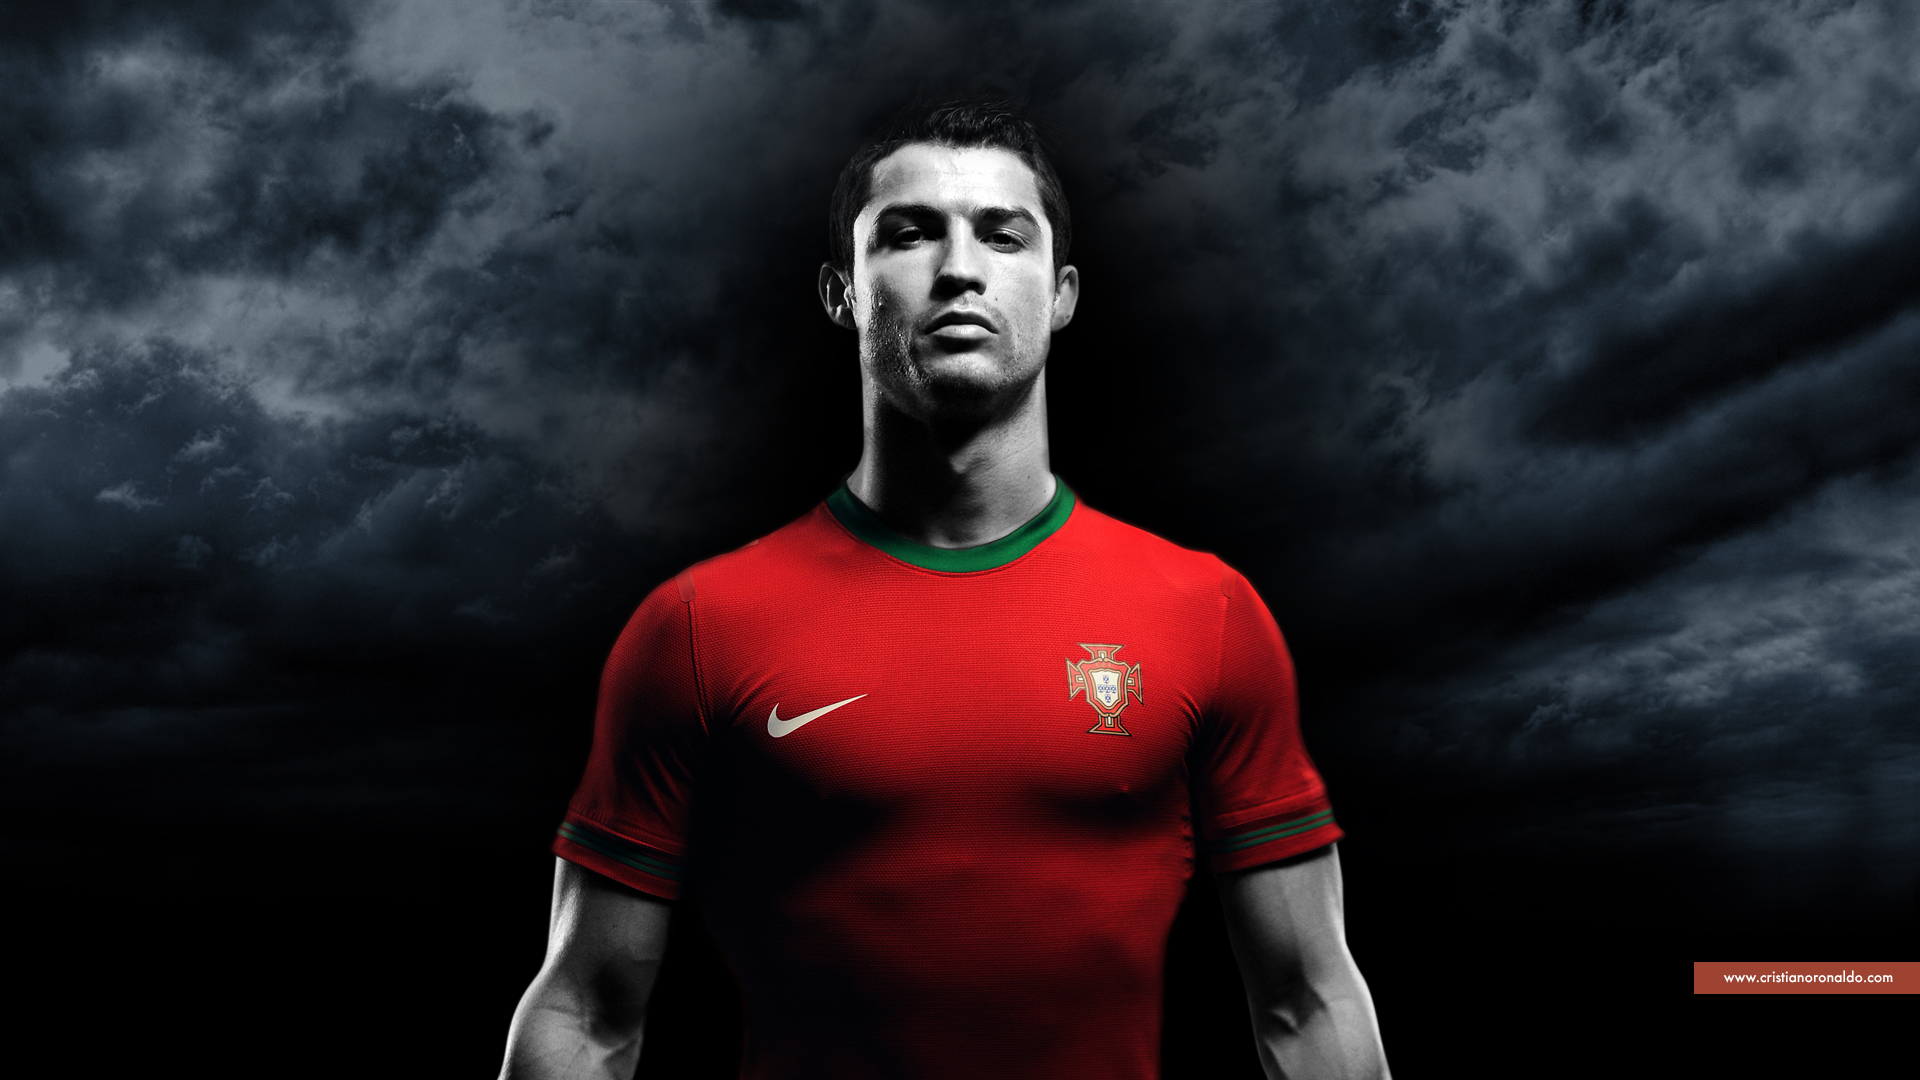 CR7 HD Images 1920x1080